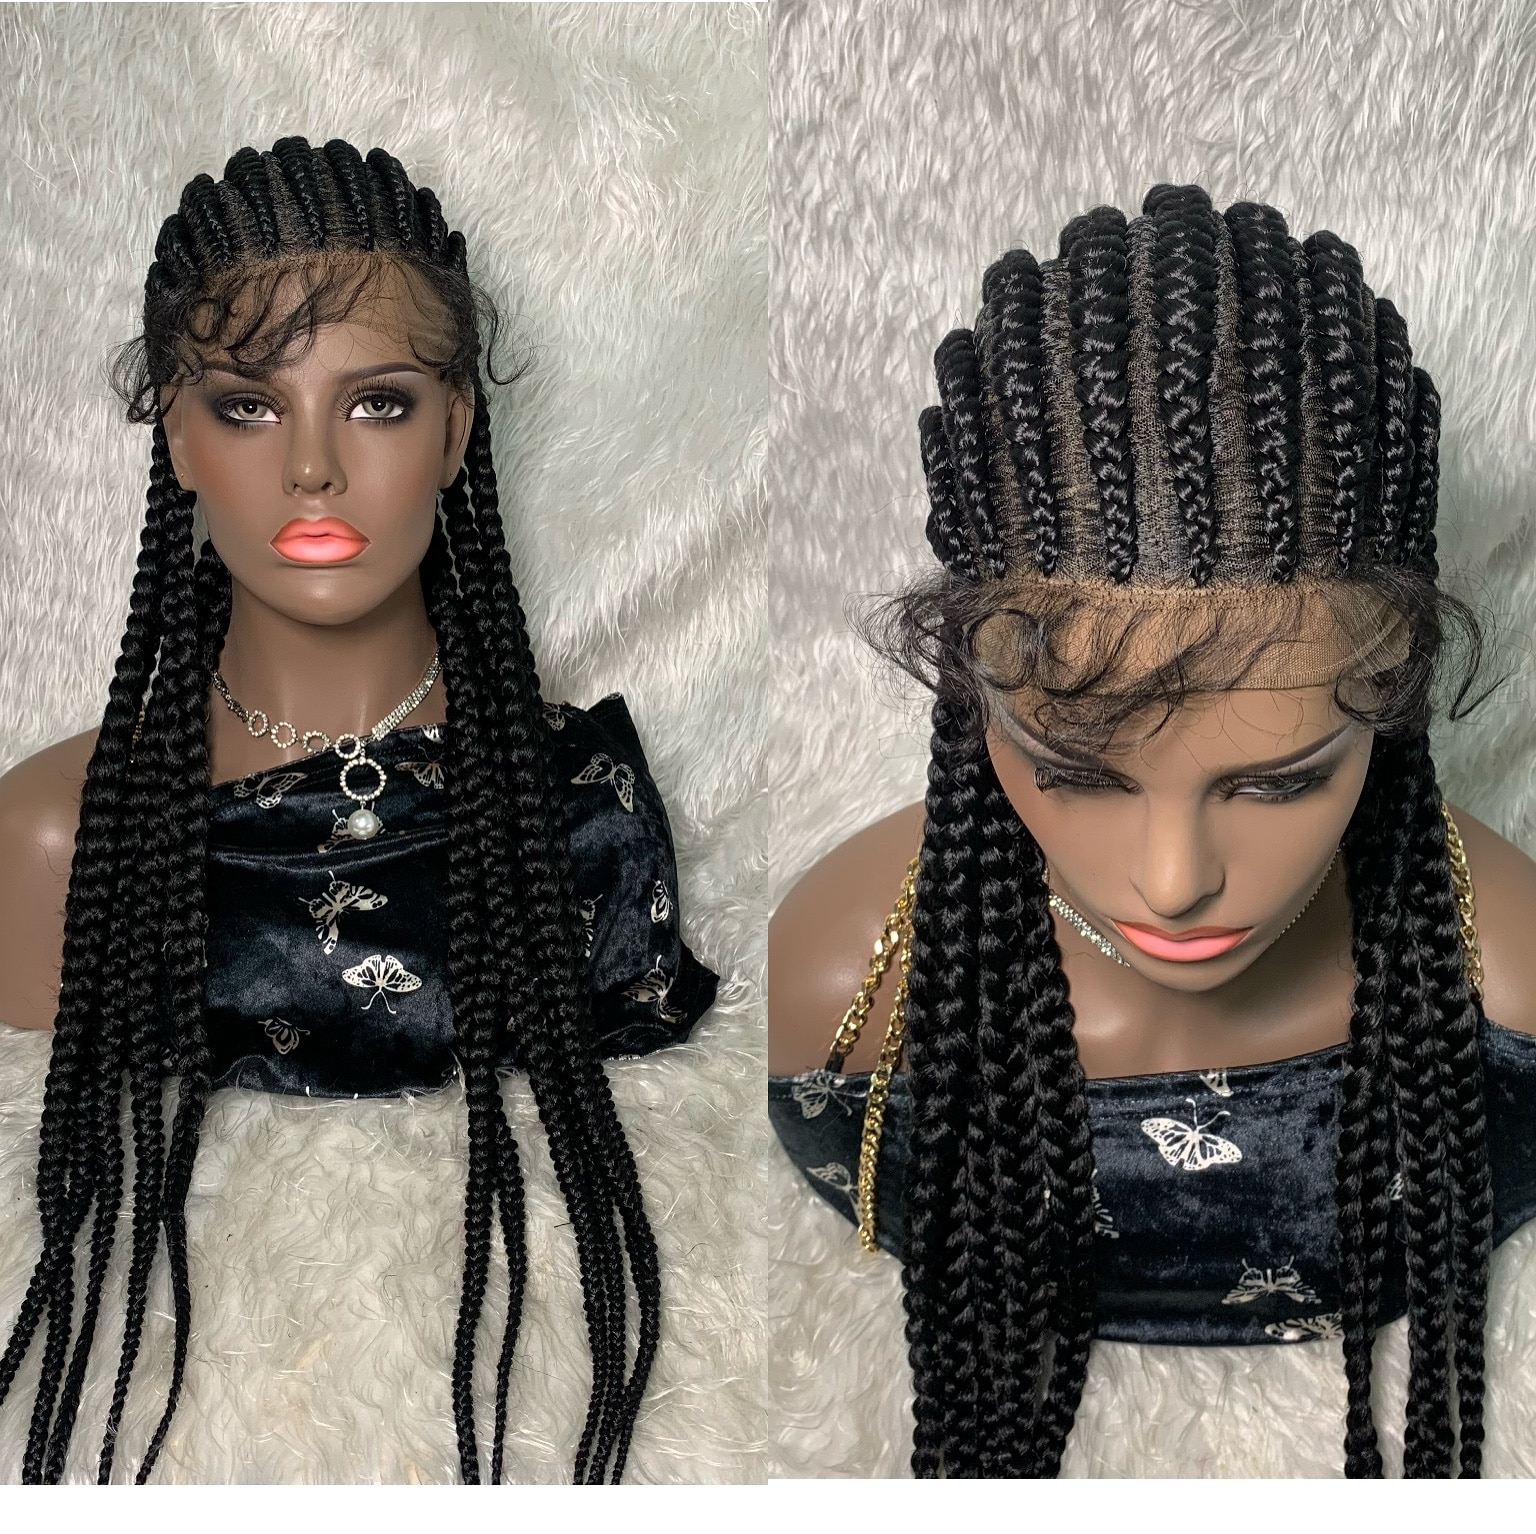 Braided Wigs Lace Front Synthetic Wig Frontal  Box TOOCCI 30 INCH Long Hair Braiding Hair Crochet Braied For Synthetic Black